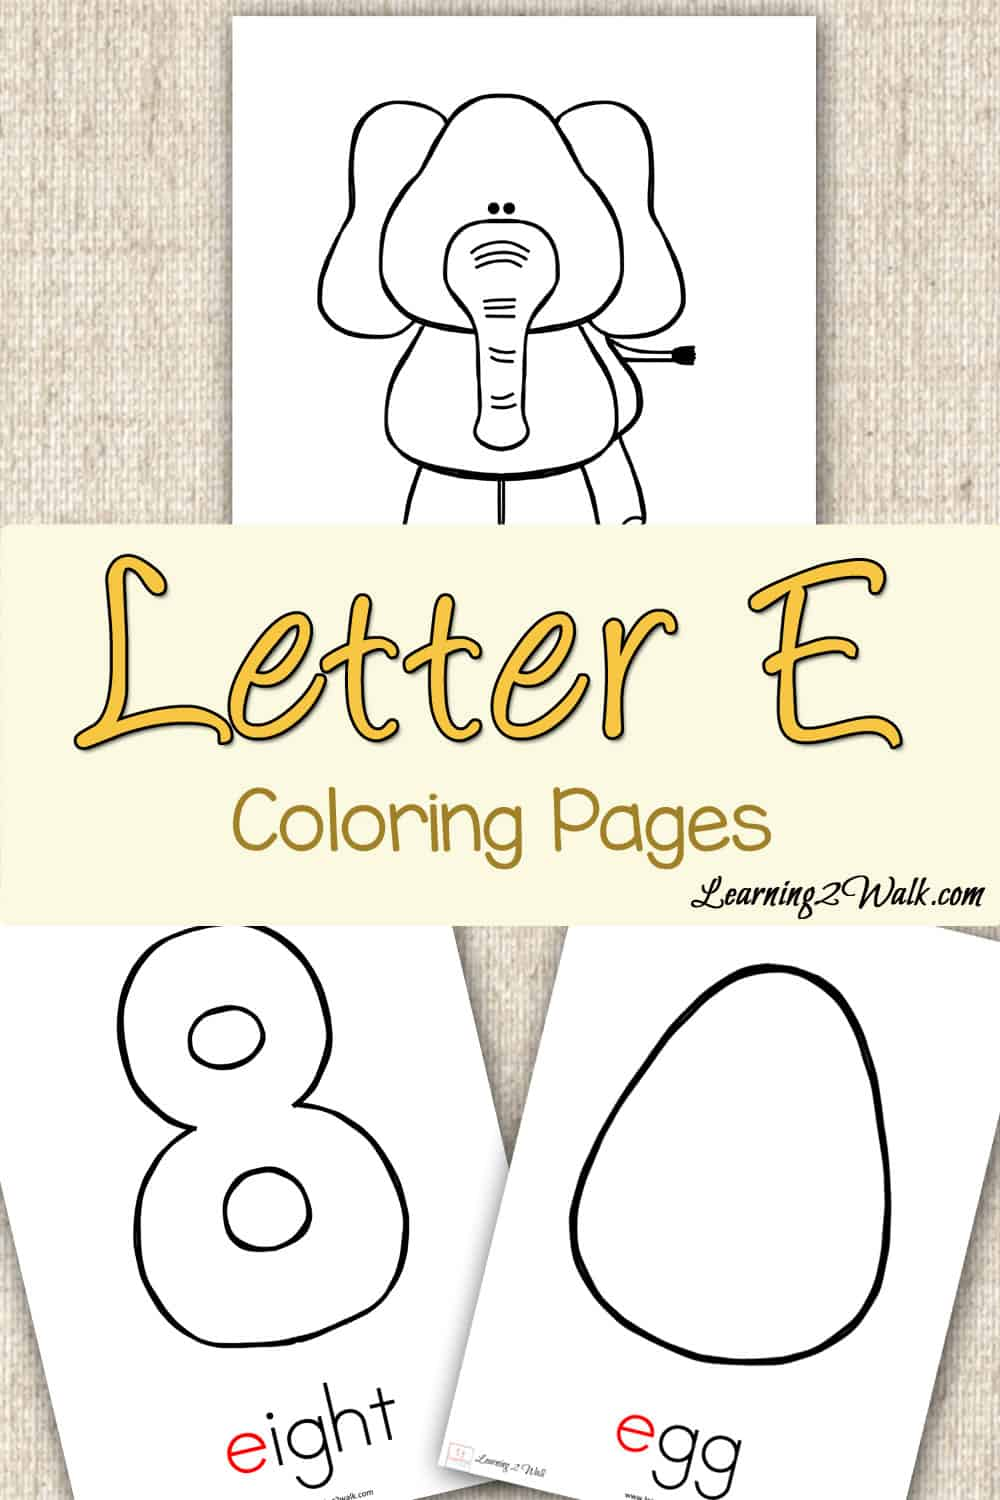 Letter d coloring pages preschool - Searching For A Few Preschool Letter Activities Try These Free Letter E Coloring Pages